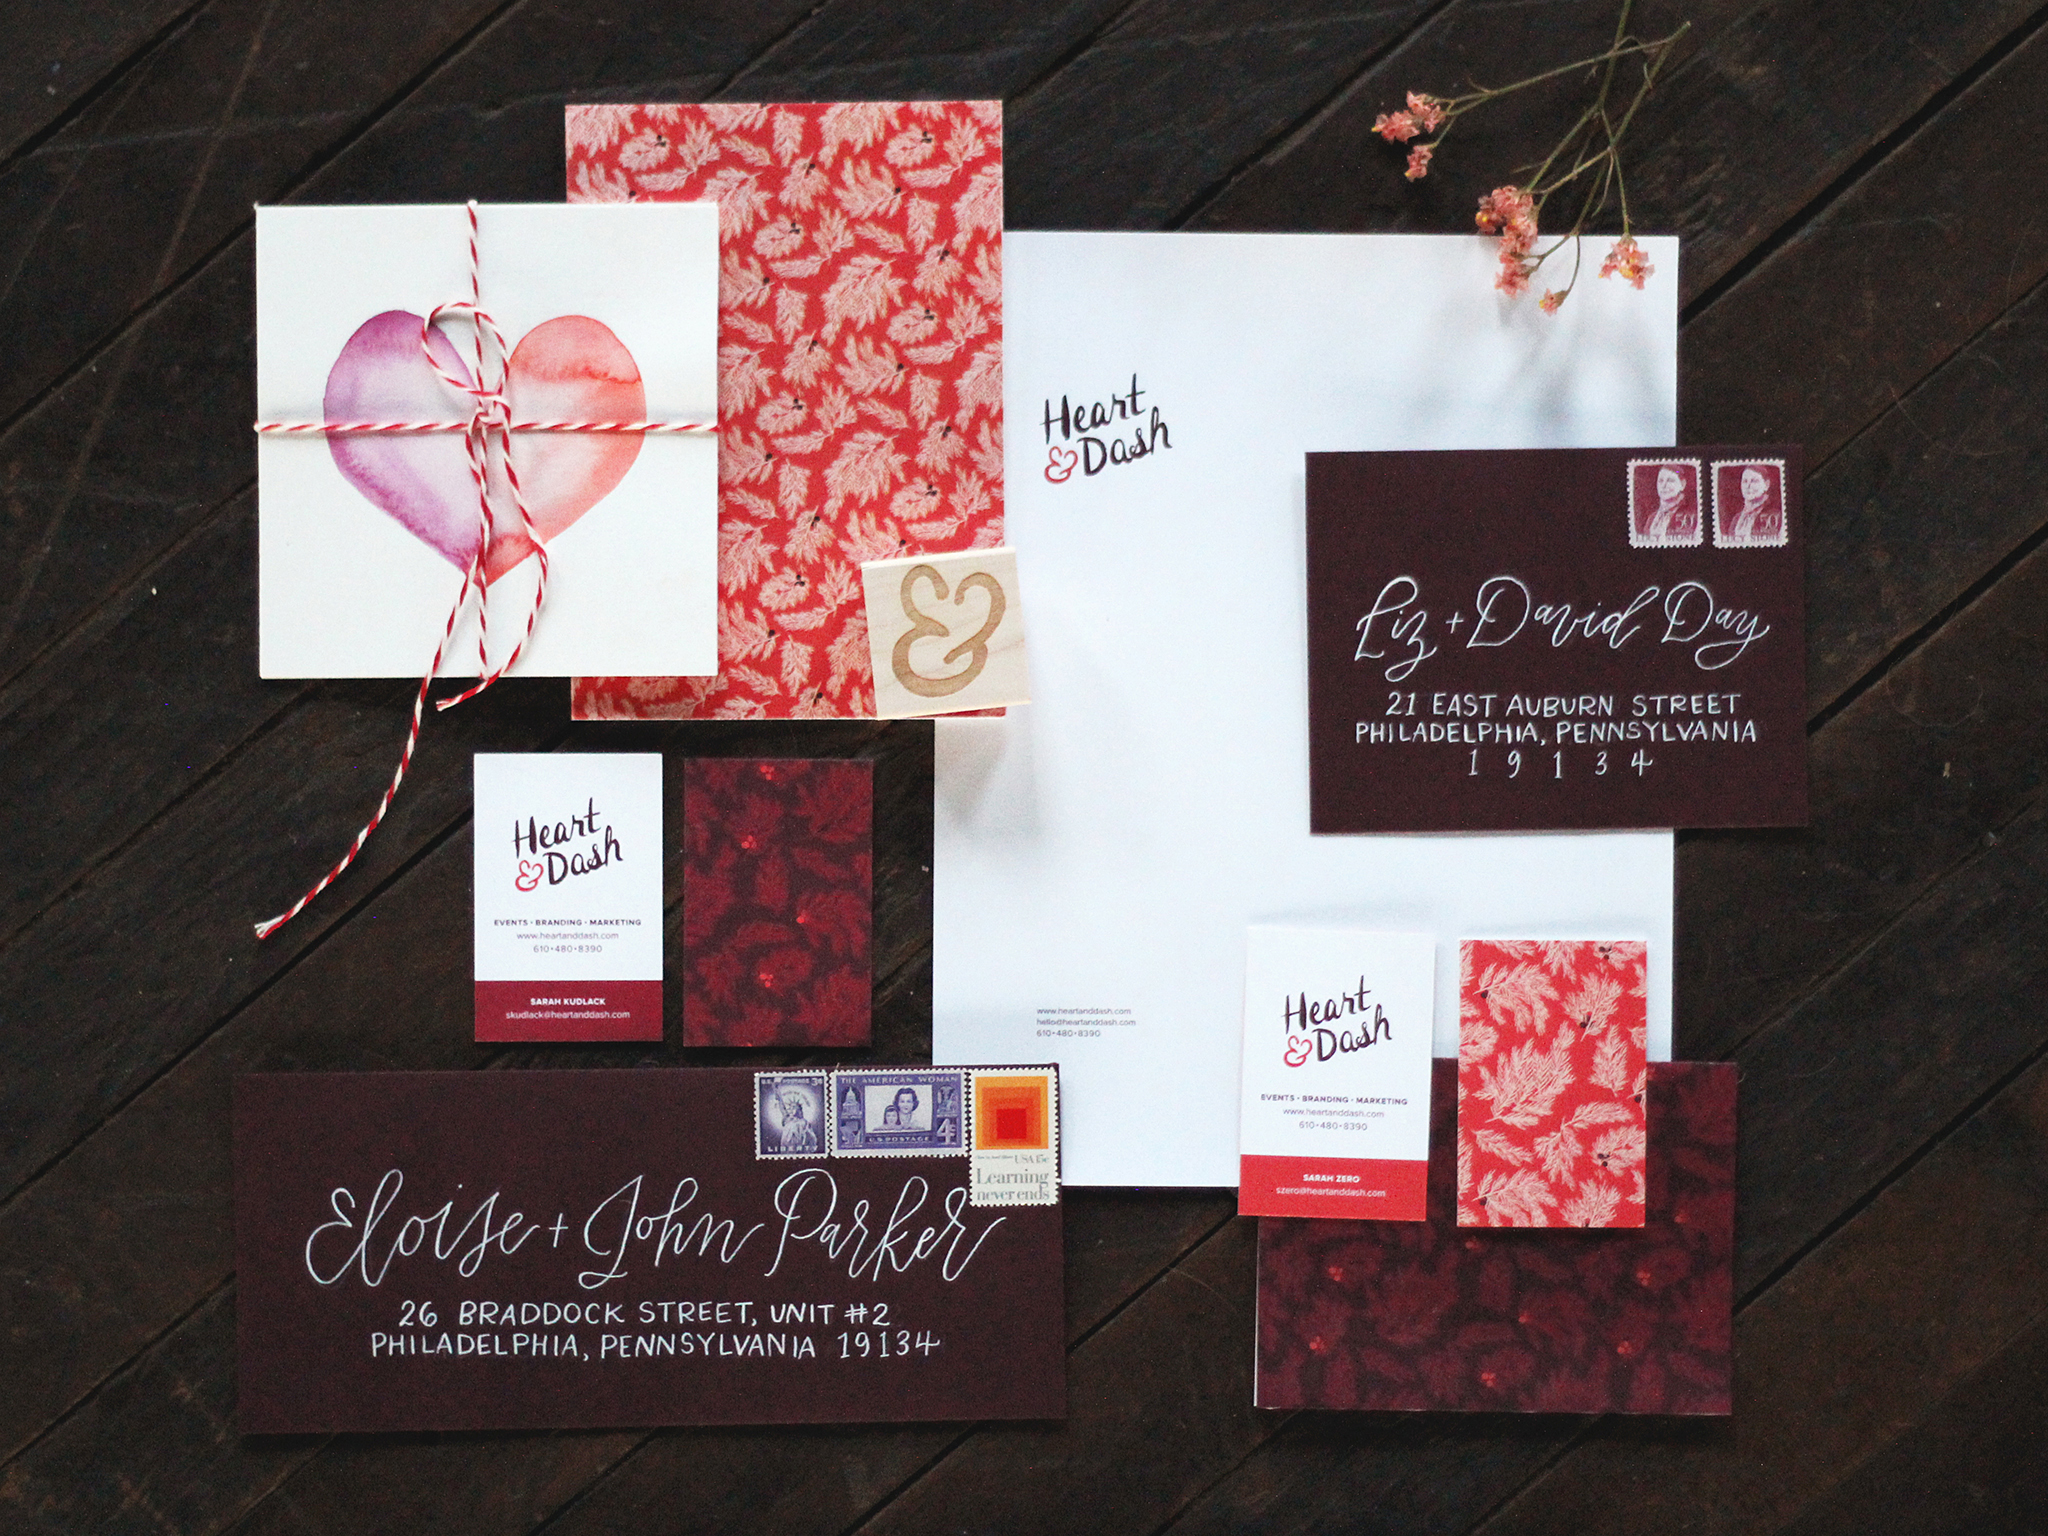 Heart-And-Dash-Branding-For-Wedding-Pros.jpg